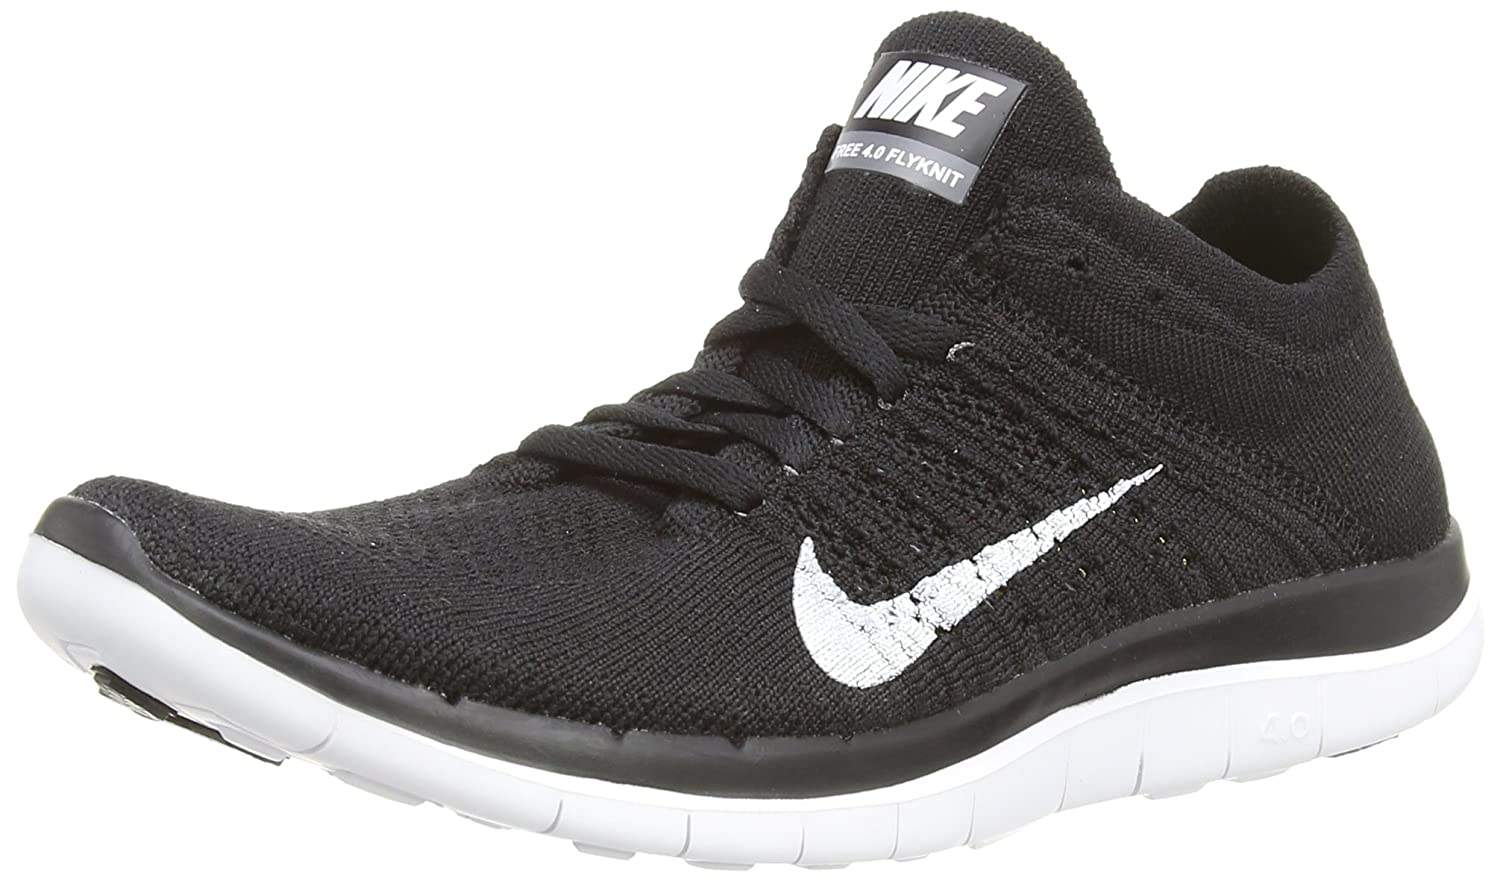 acheter pas cher 63a14 6acfc Amazon.com | Nike Free 4.0 Flyknit Women's Running Shoes ...